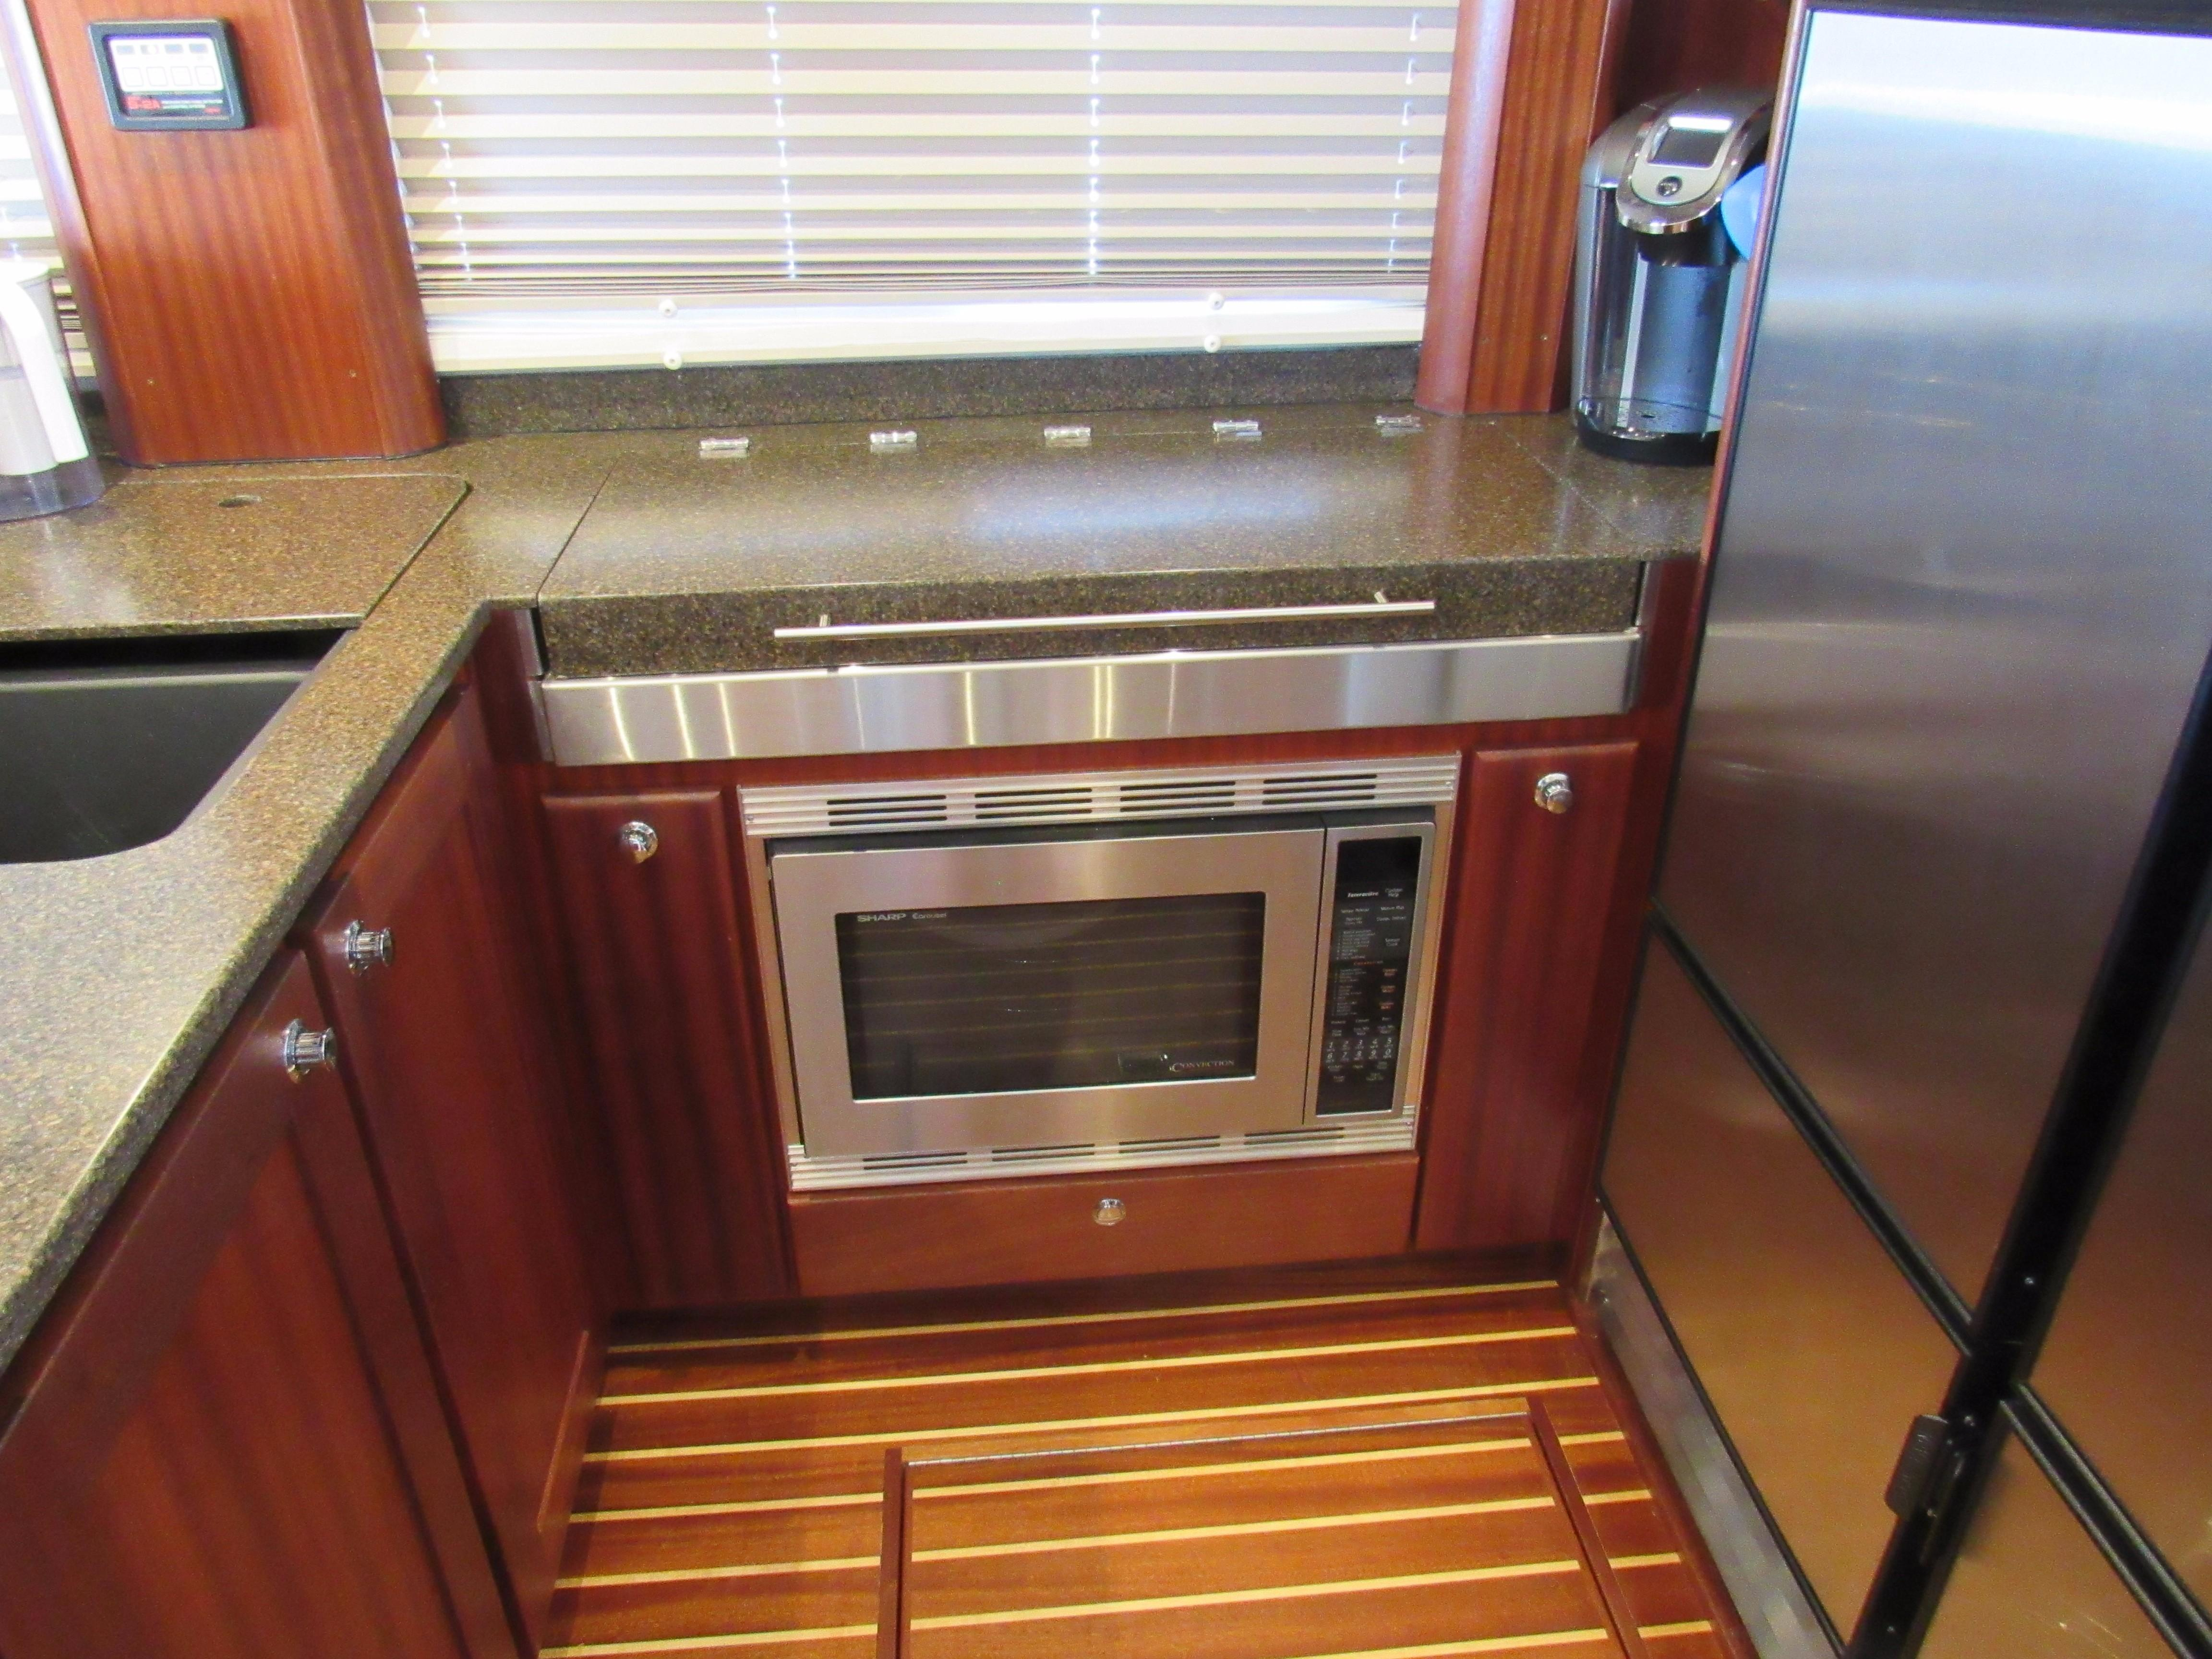 Hidden CookTop and Microwave/Convection Oven